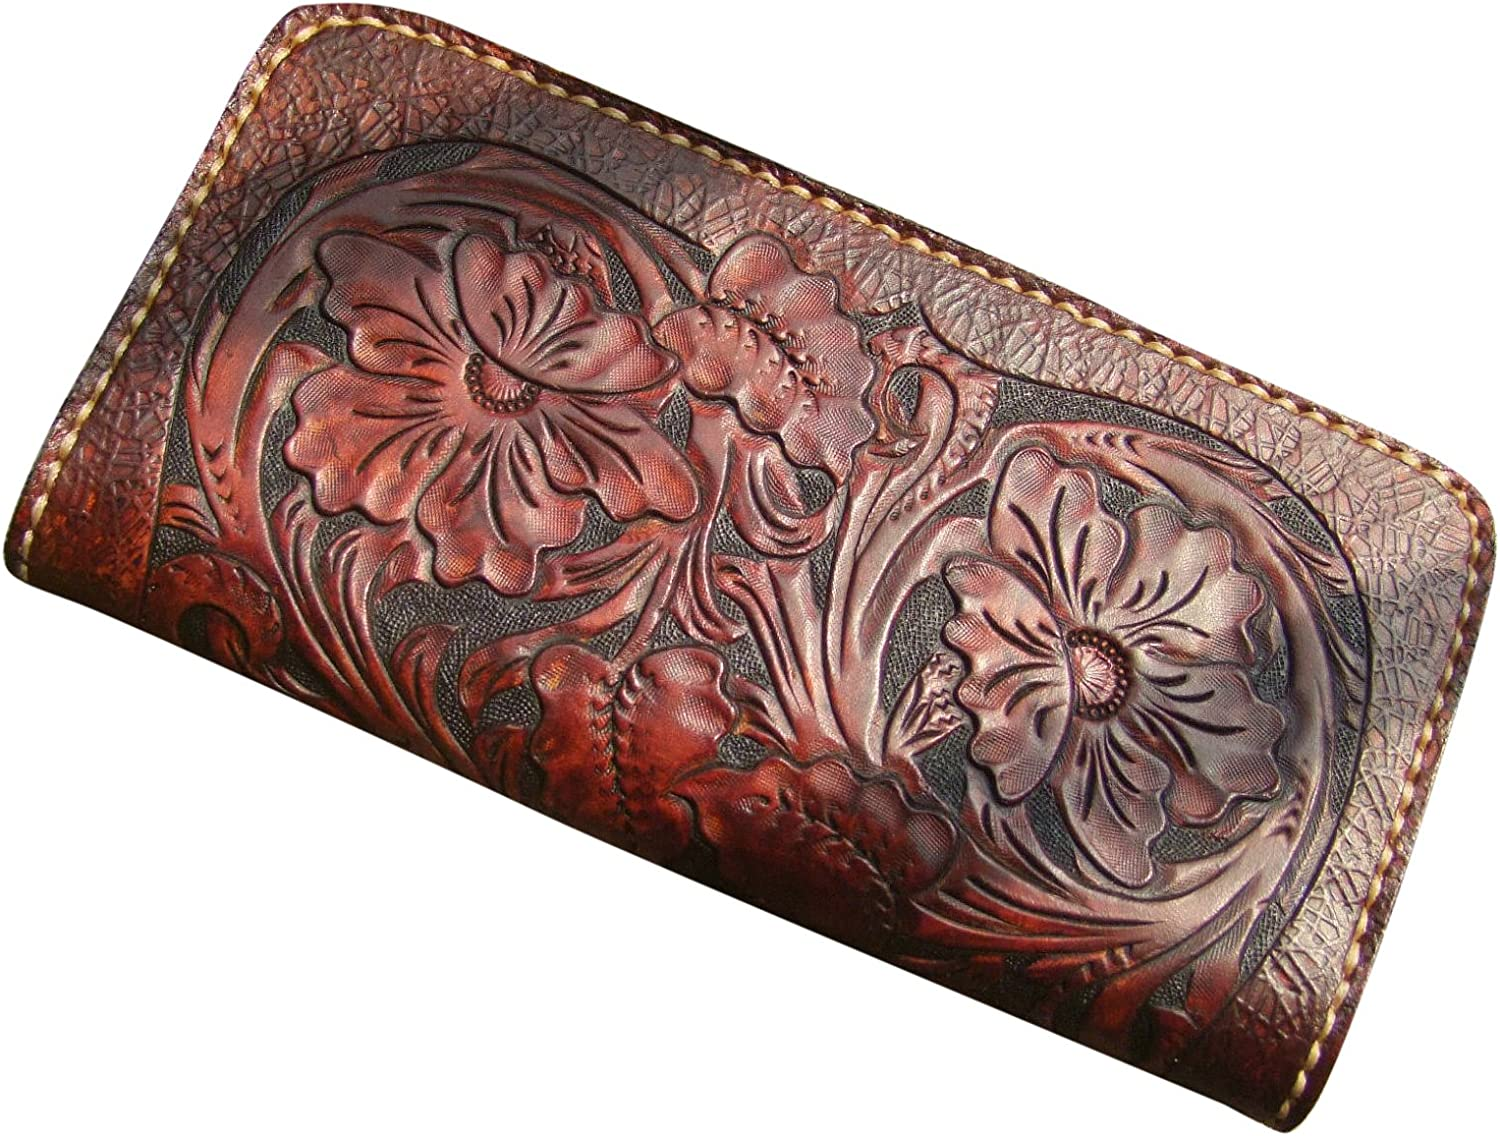 GPUFashion Handmade Leather Craft Wallet Chocolate Carved with Chocolate Tang Dynasty flower Design